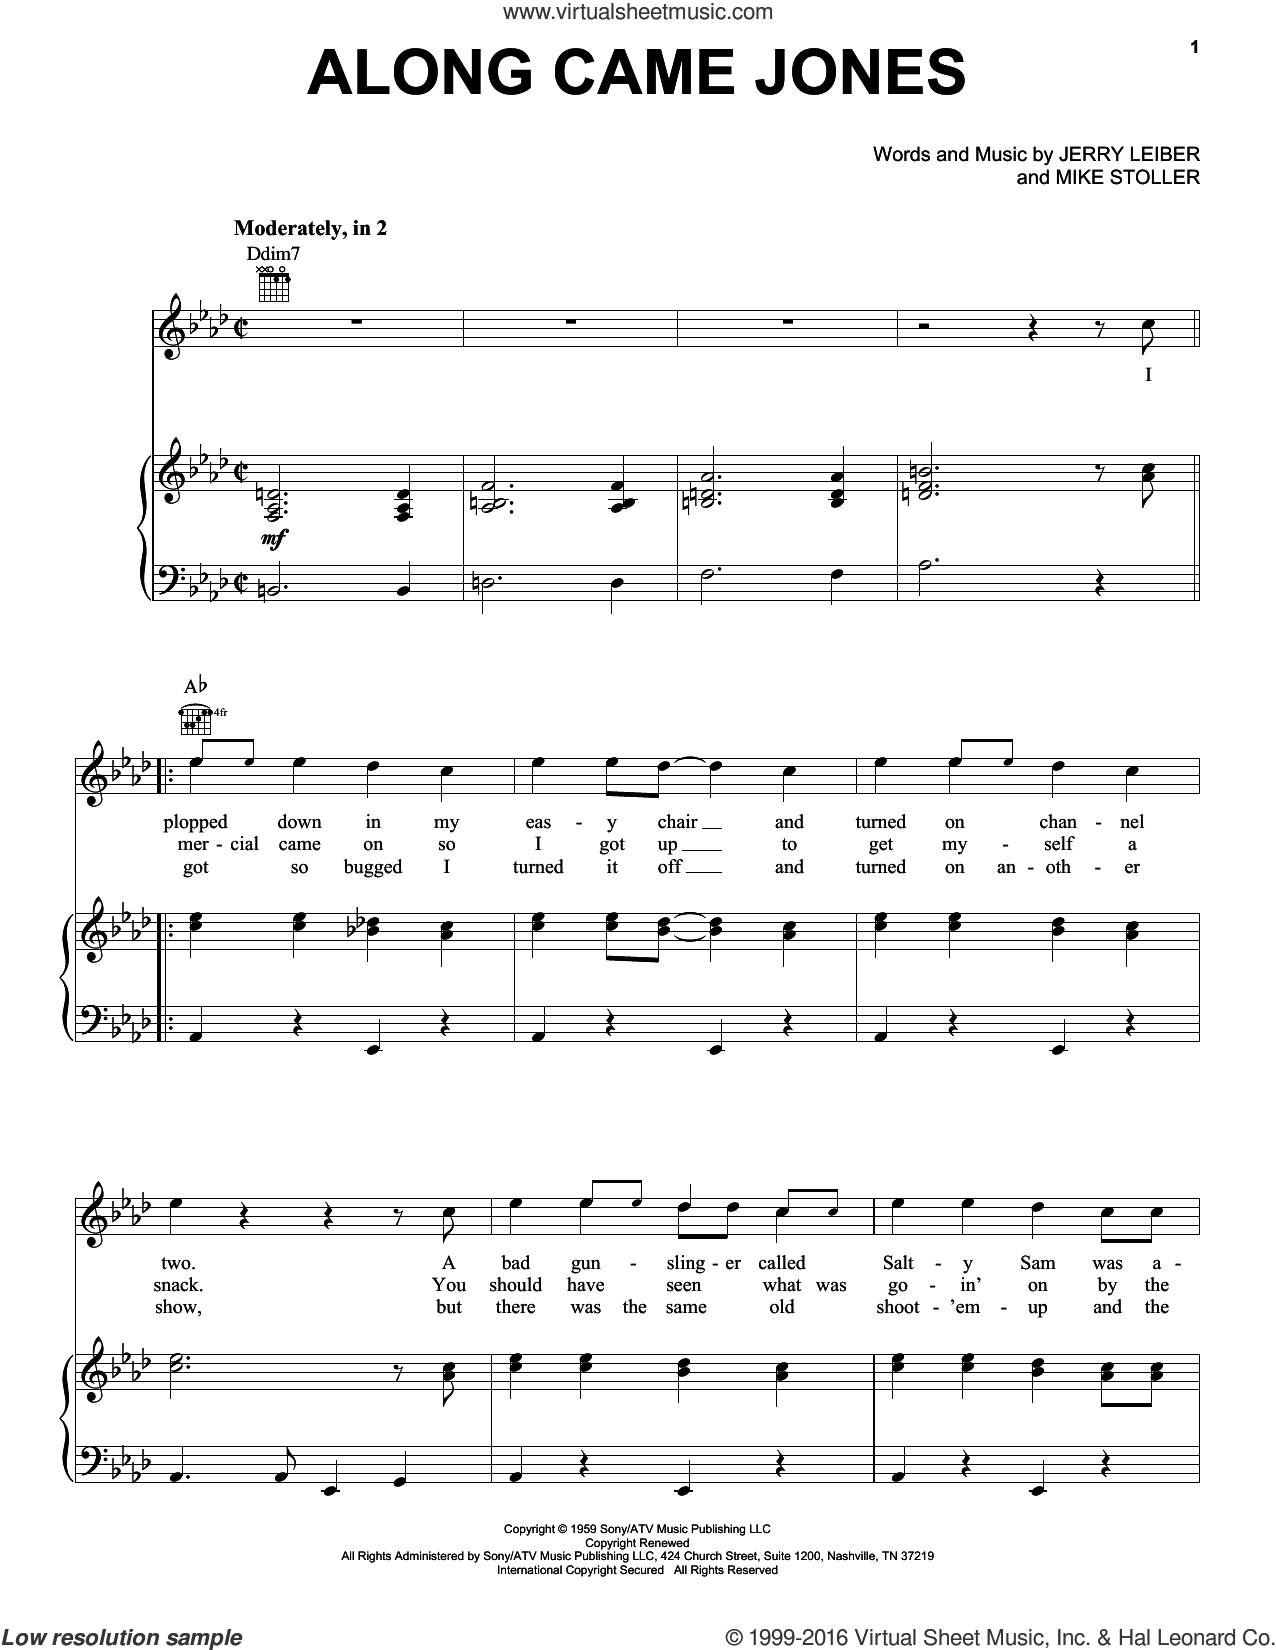 Along Came Jones sheet music for voice, piano or guitar by The Coasters, Leiber & Stoller and Mike Stoller, intermediate voice, piano or guitar. Score Image Preview.